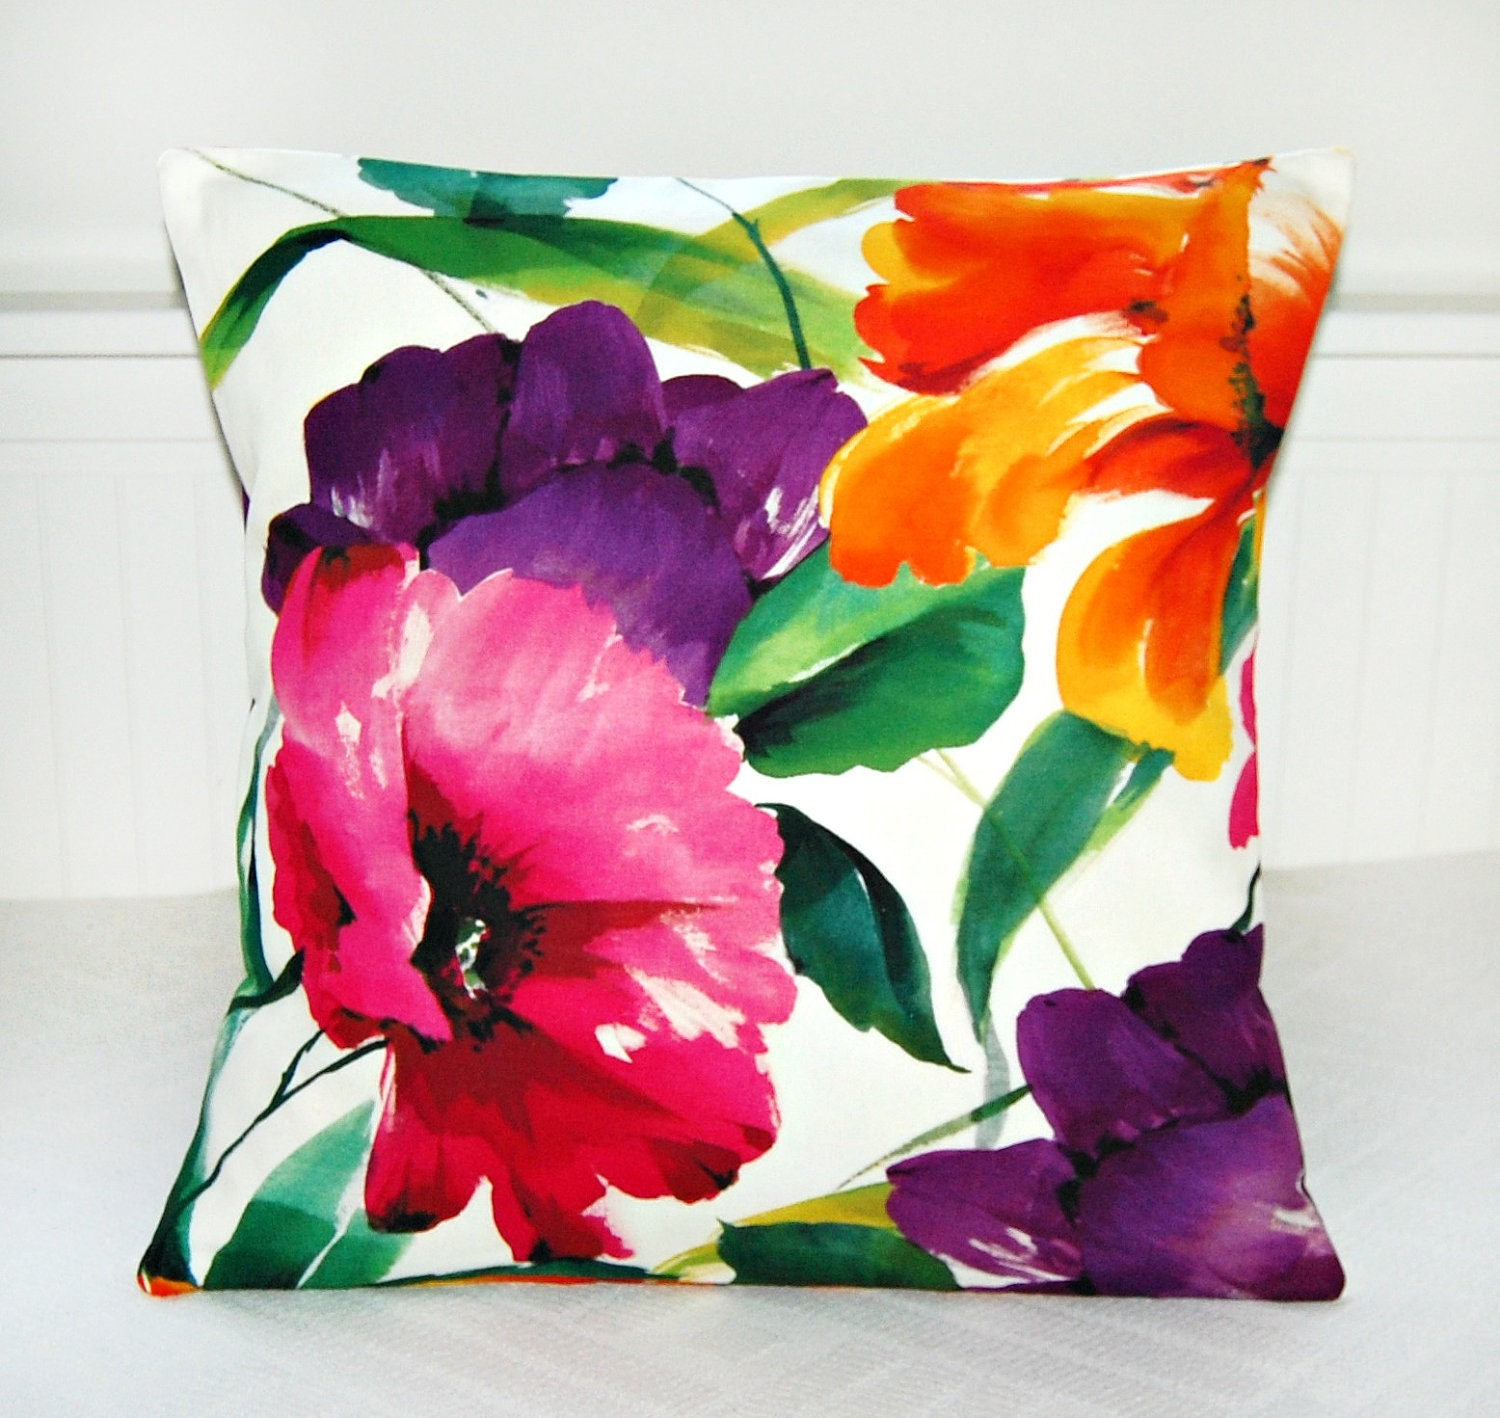 Large Flower Throw Pillow : large flowers cushion cover floral art decorative pillow